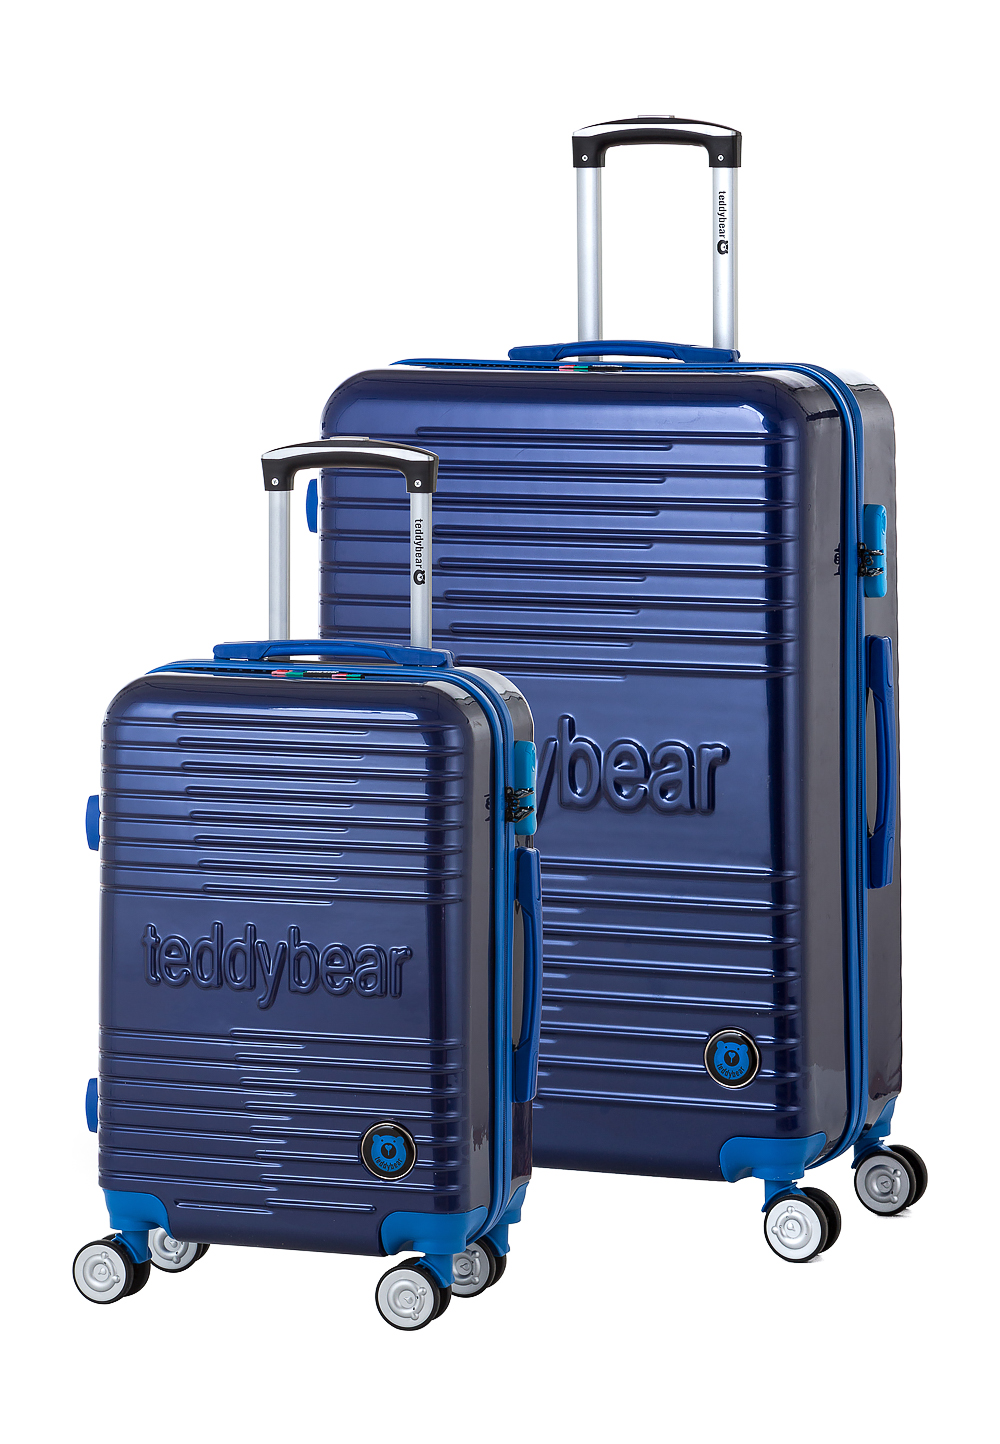 Teddy Bear Trolley-Set Sumire, 2-tlg. blau | Taschen > Koffer & Trolleys > Trolleys | Blau | Teddy Bear